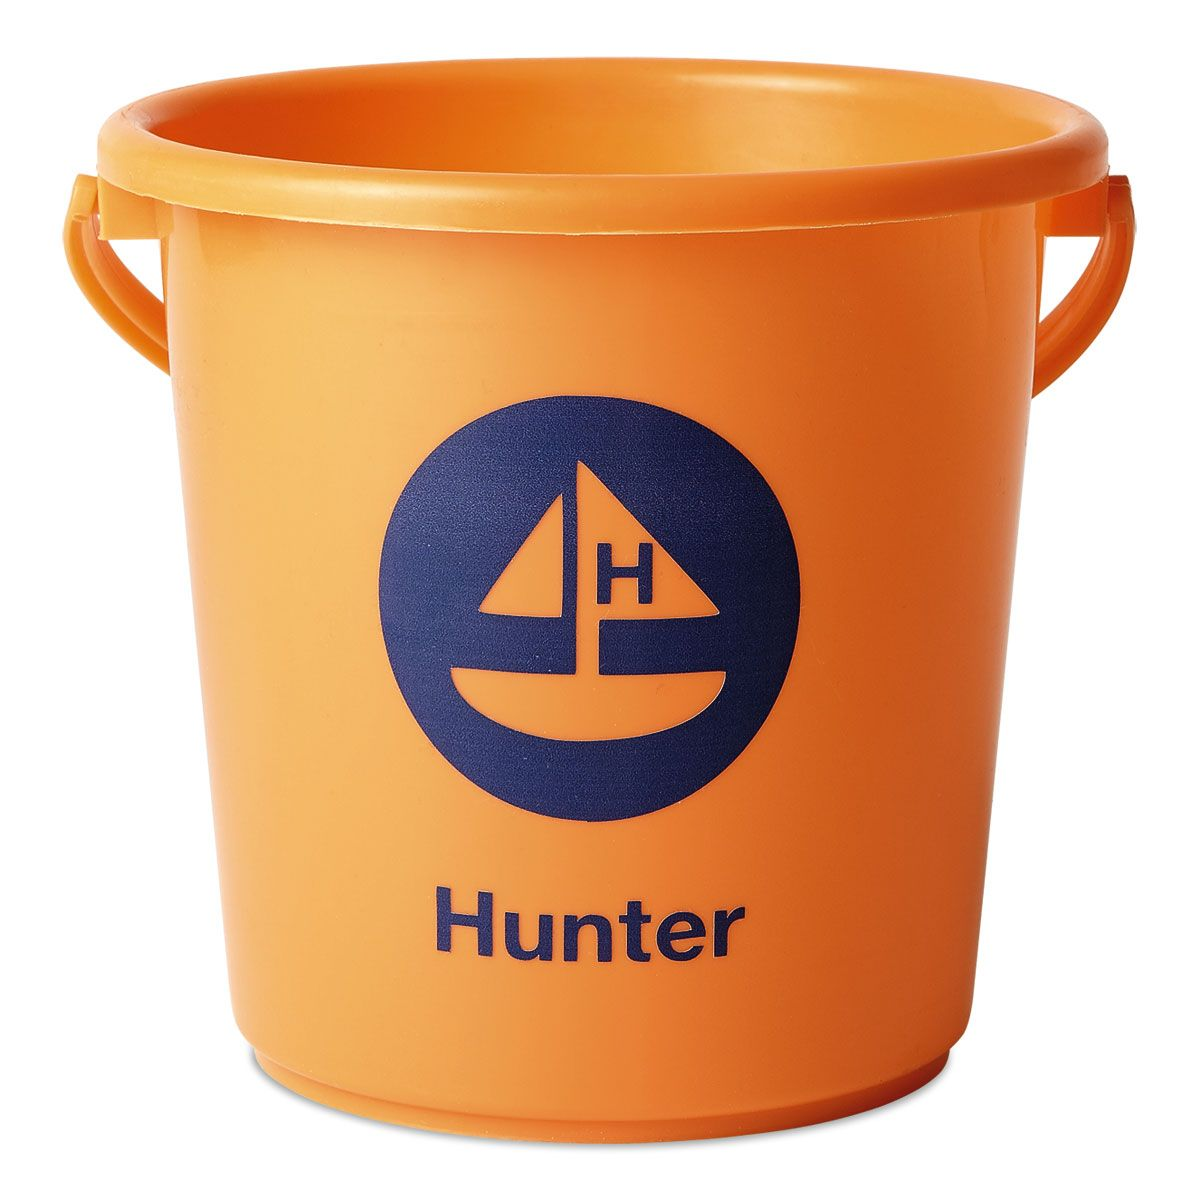 Personalized Beach Bucket-Orange-816451D